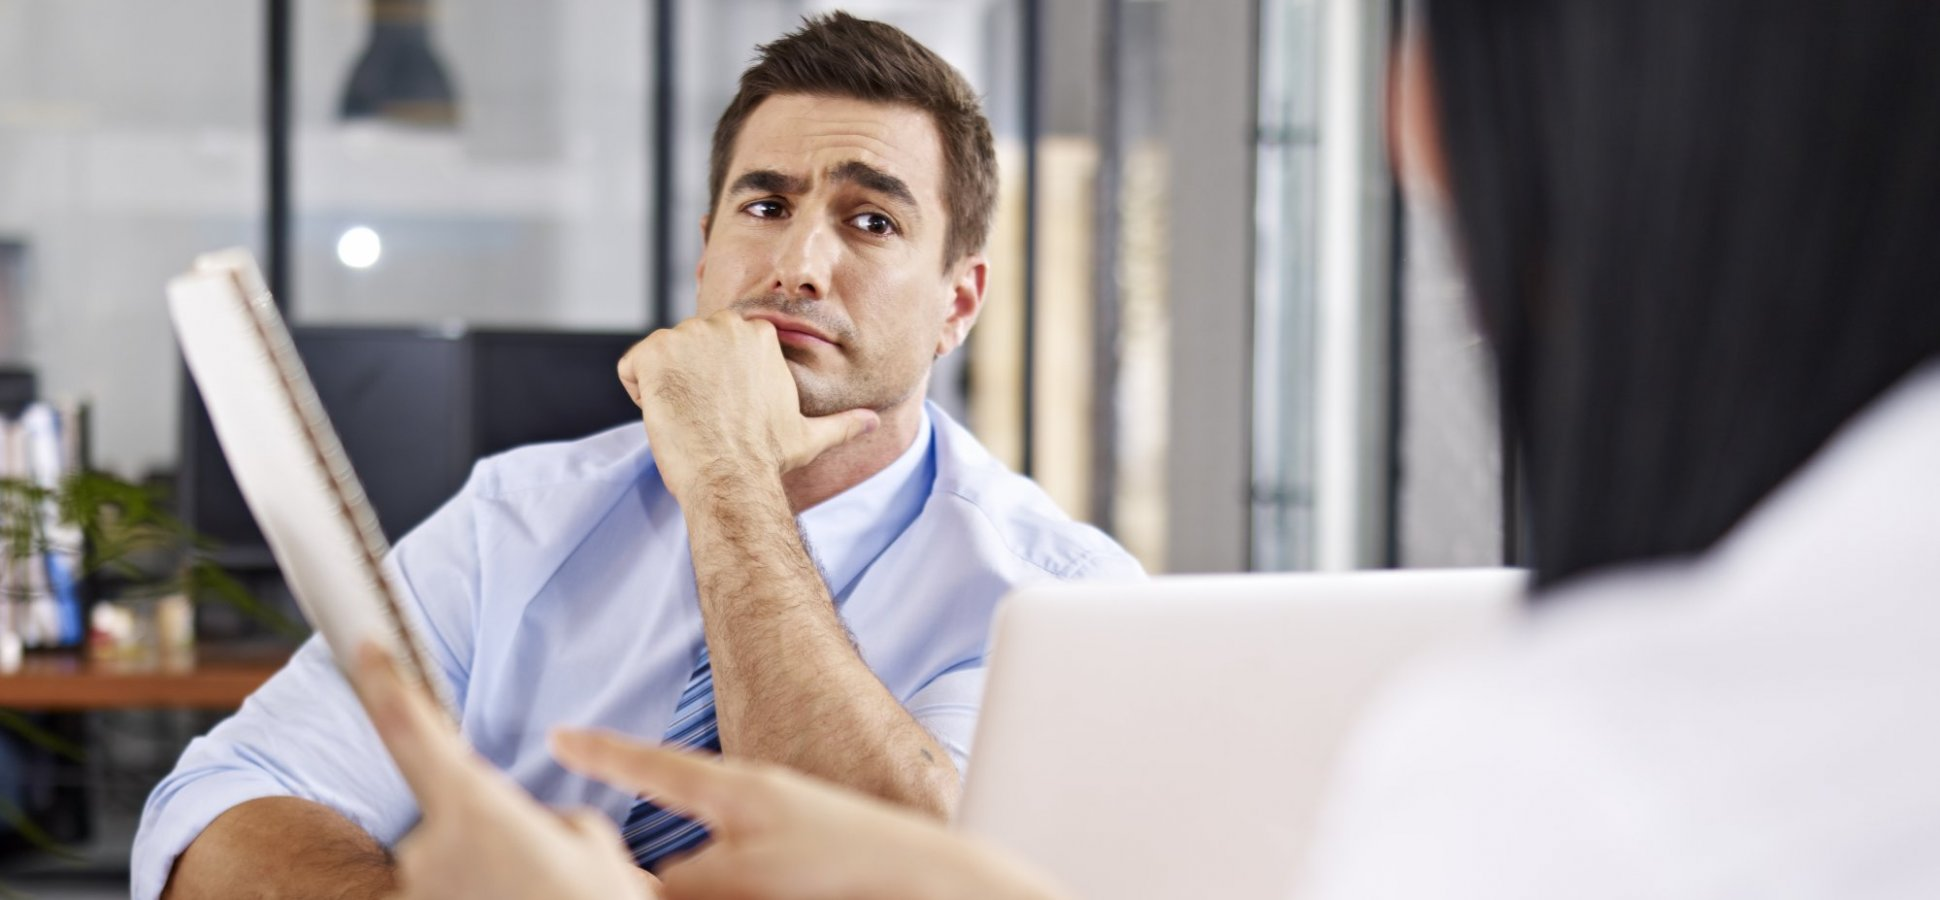 How to Deal with That Difficult Person Who's Hijacking Your Meeting